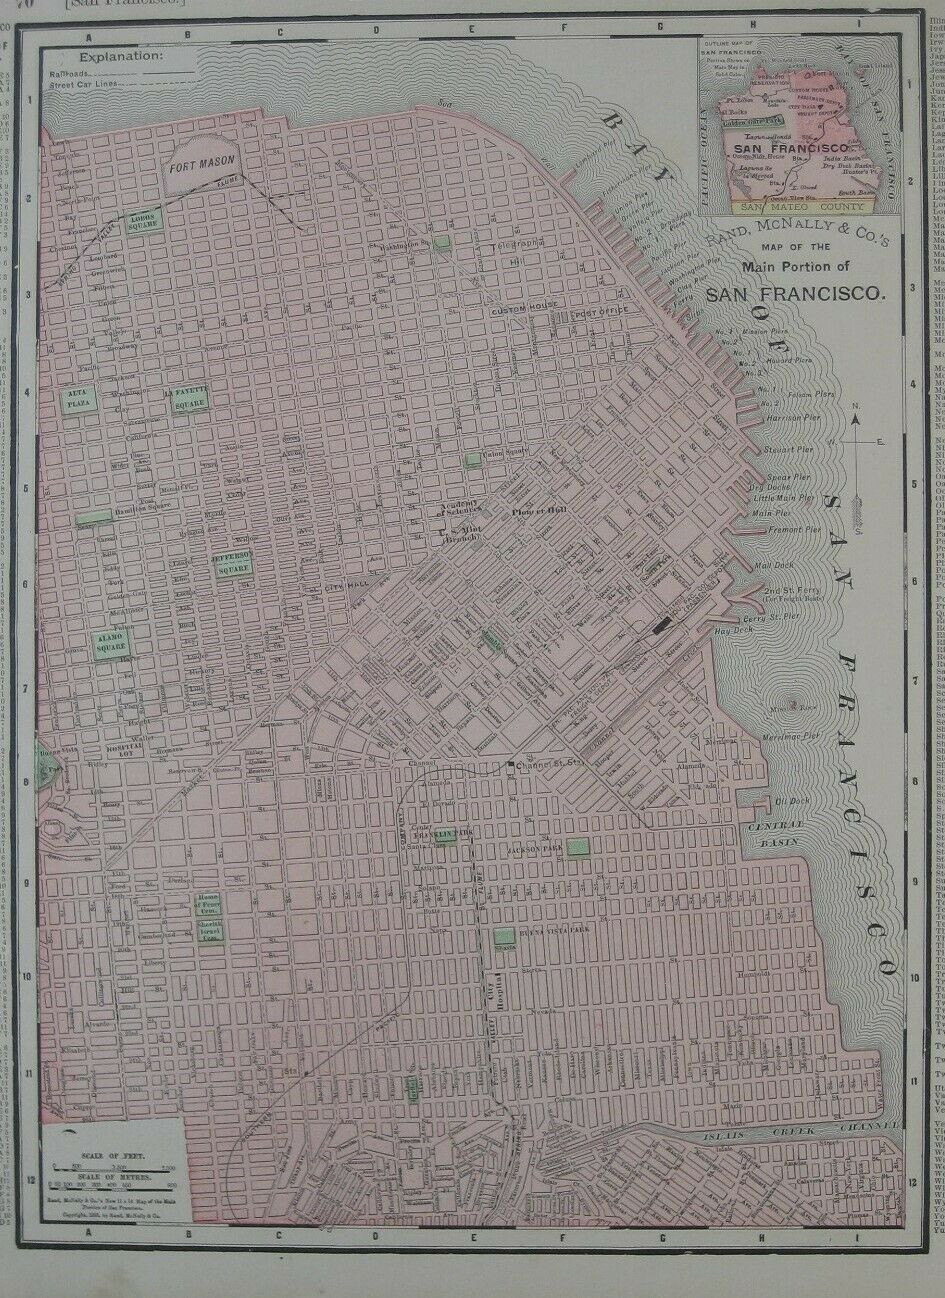 Original 1895 antique color lithographed street plan of San Francisco, printed more than 120 years ago.